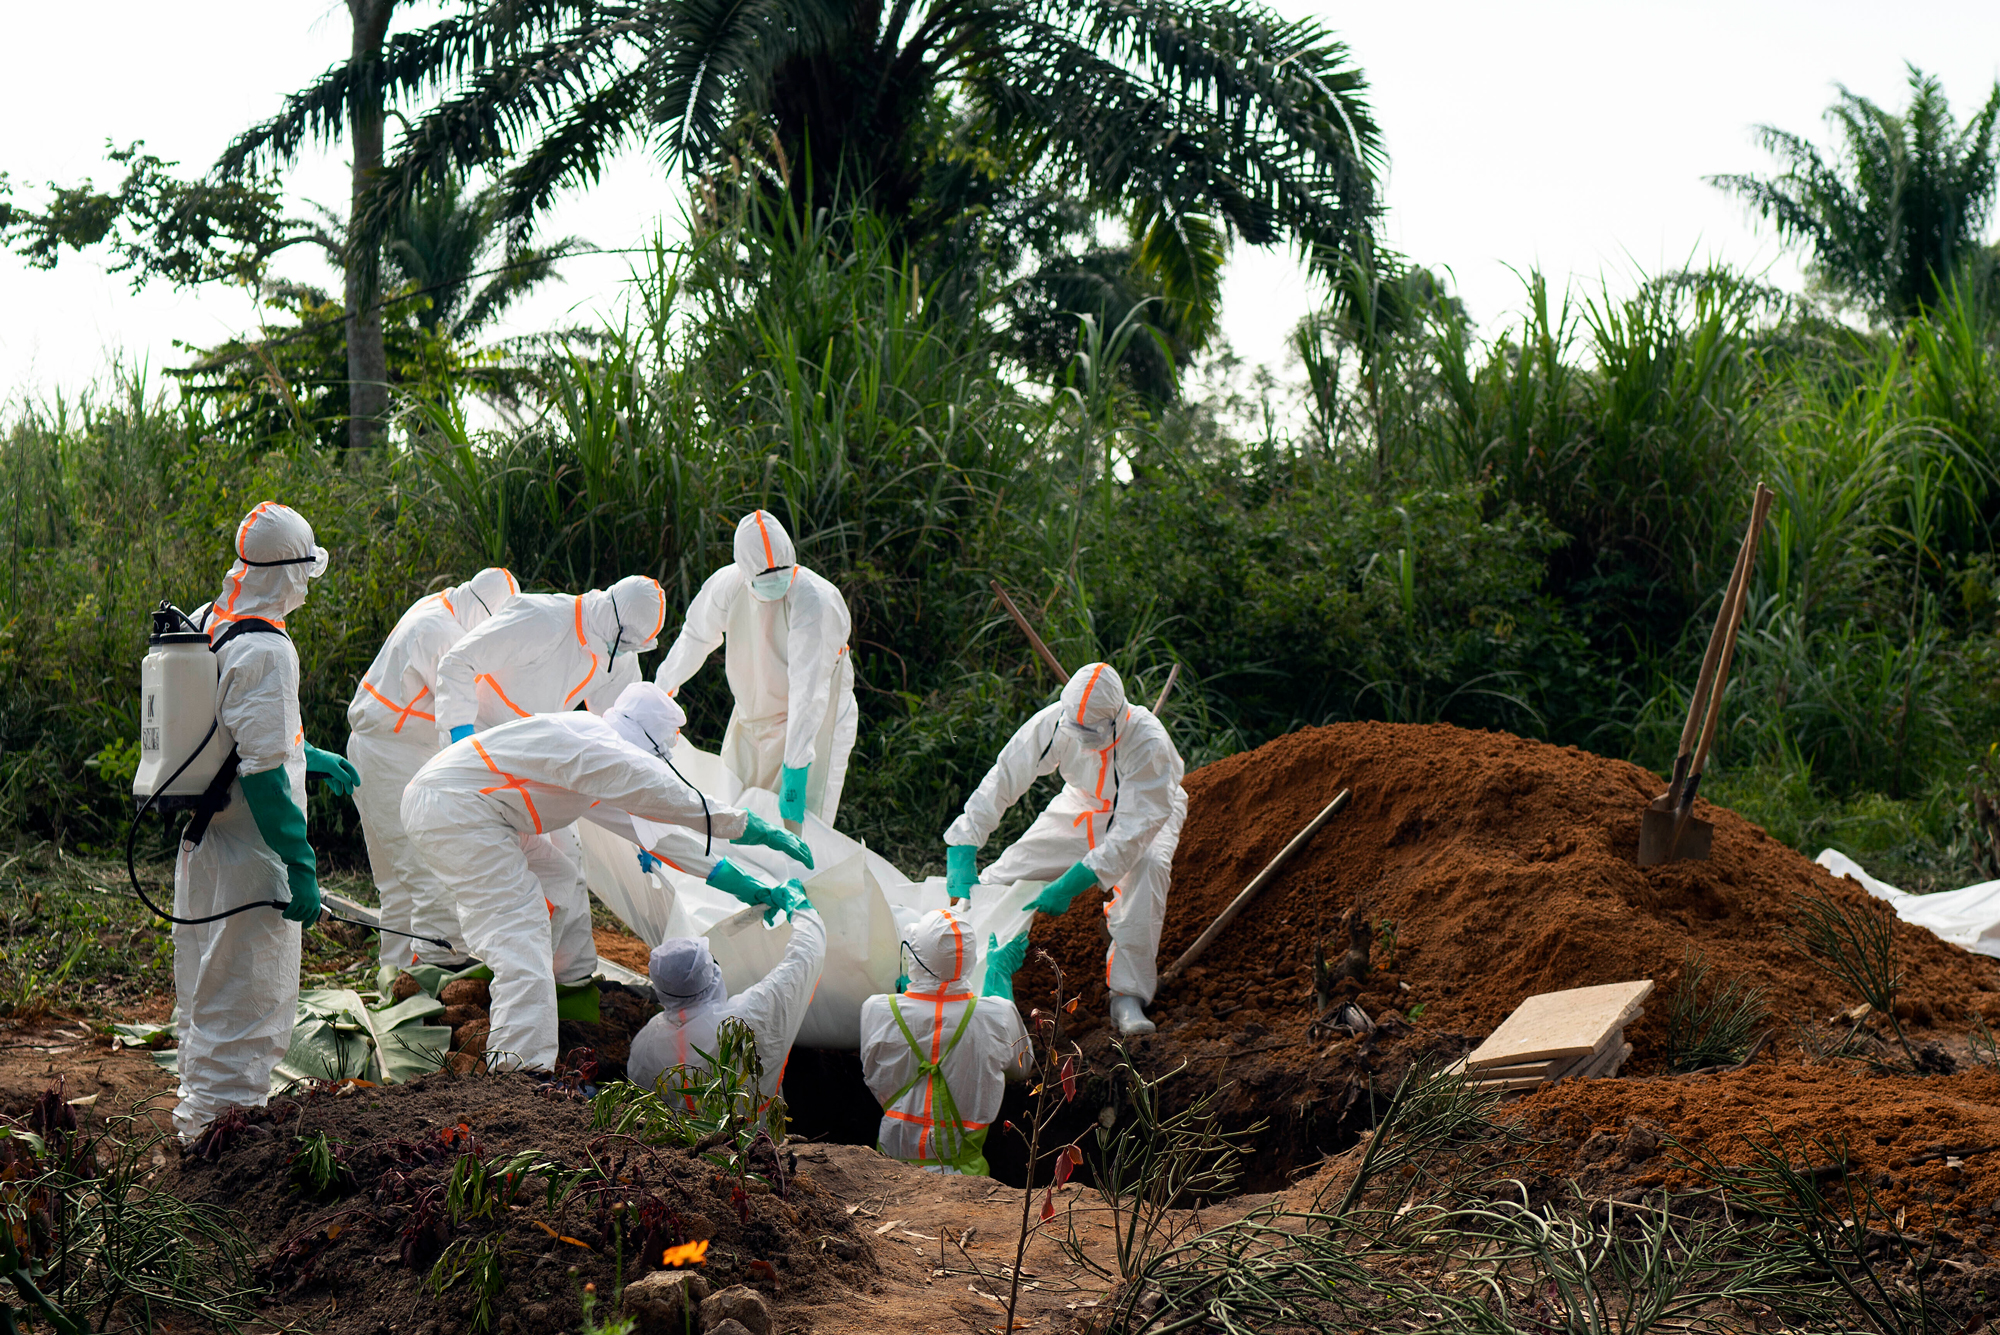 An Ebola victim is put to rest at the Muslim cemetery in Beni, Congo DRC